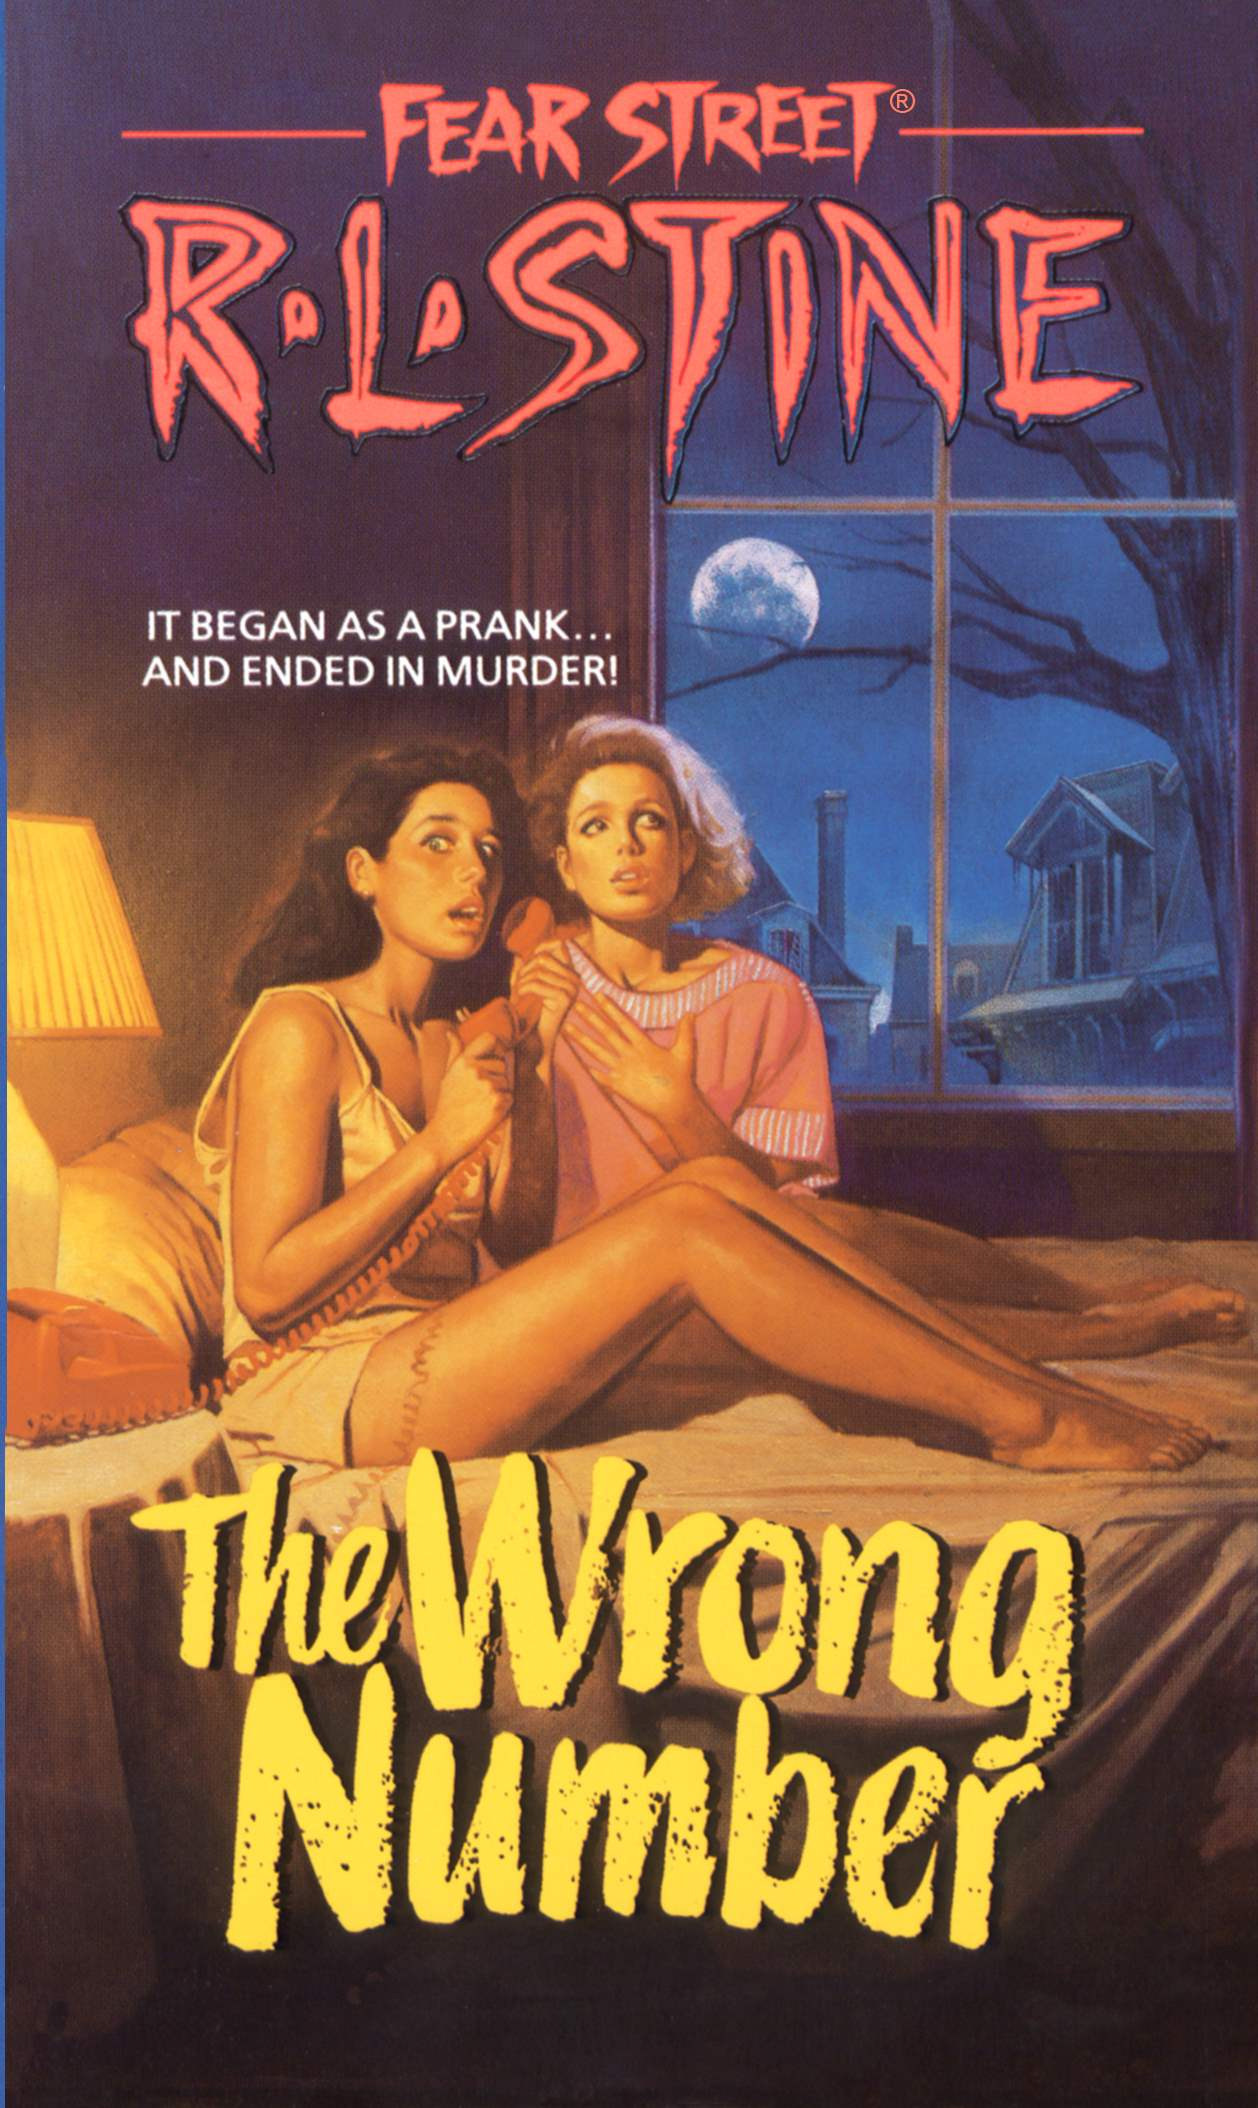 Fear Street The Wrong Number By R.L. Stine